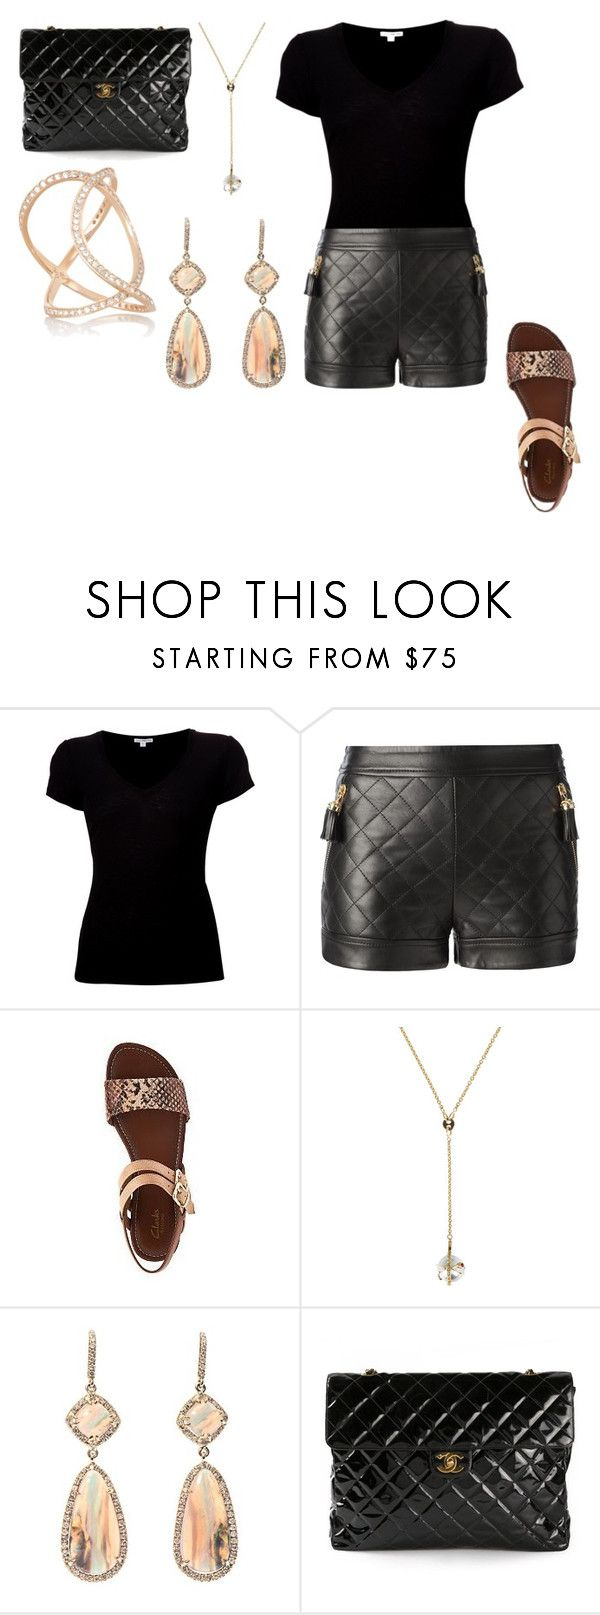 """Untitled #26758"" by edasn12 ❤ liked on Polyvore featuring James Perse, Moschino, Clarks, Ikuria, NSR Nina Runsdorf, Chanel and Anita Ko"